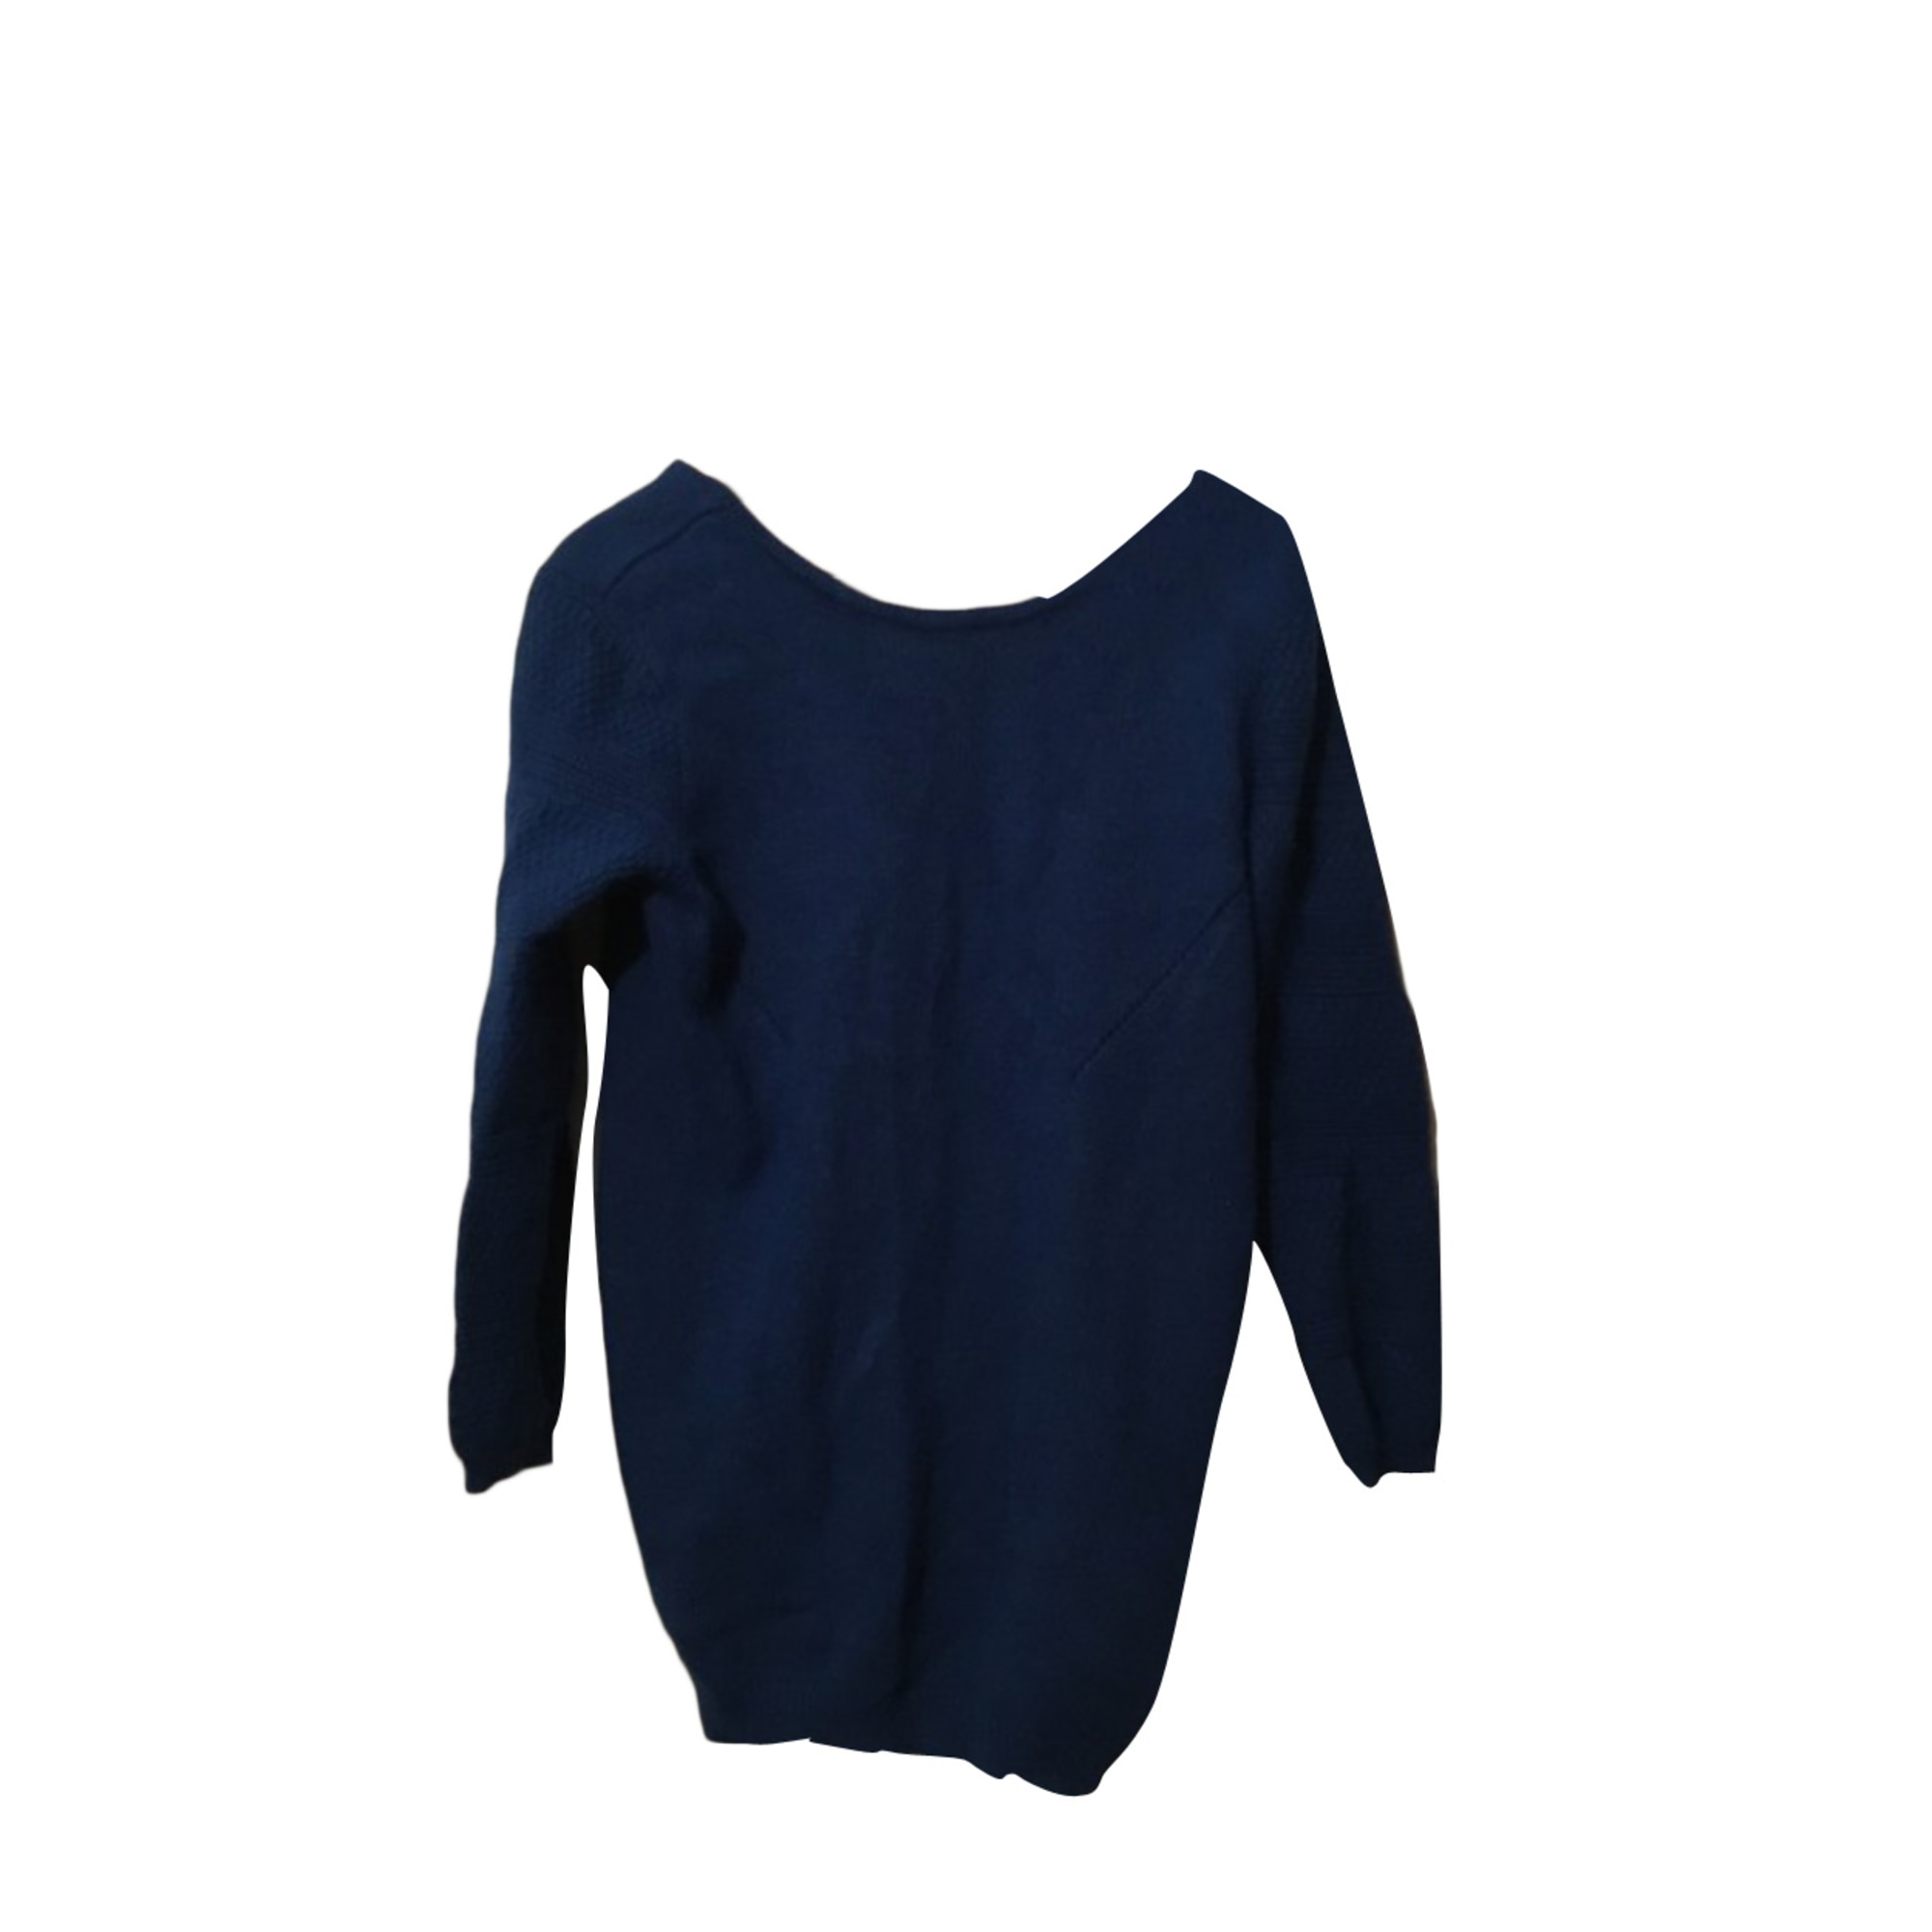 Sweater BA&SH Blue, navy, turquoise